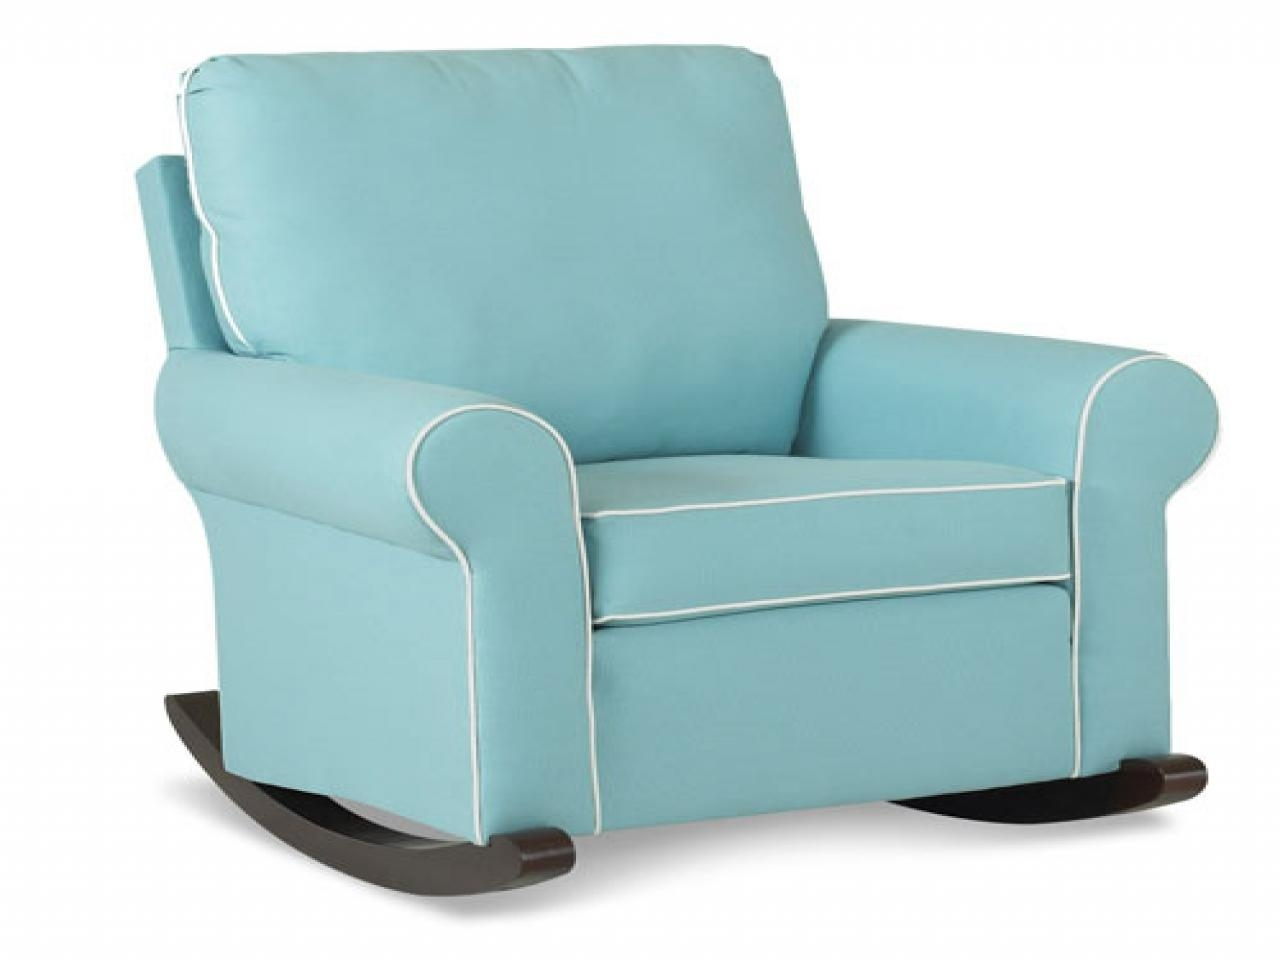 Sofa Baby Rocking Chairs Modern For Nursery Chair Concept | Tugrahan Inside Sofa Rocking Chairs (Image 12 of 20)